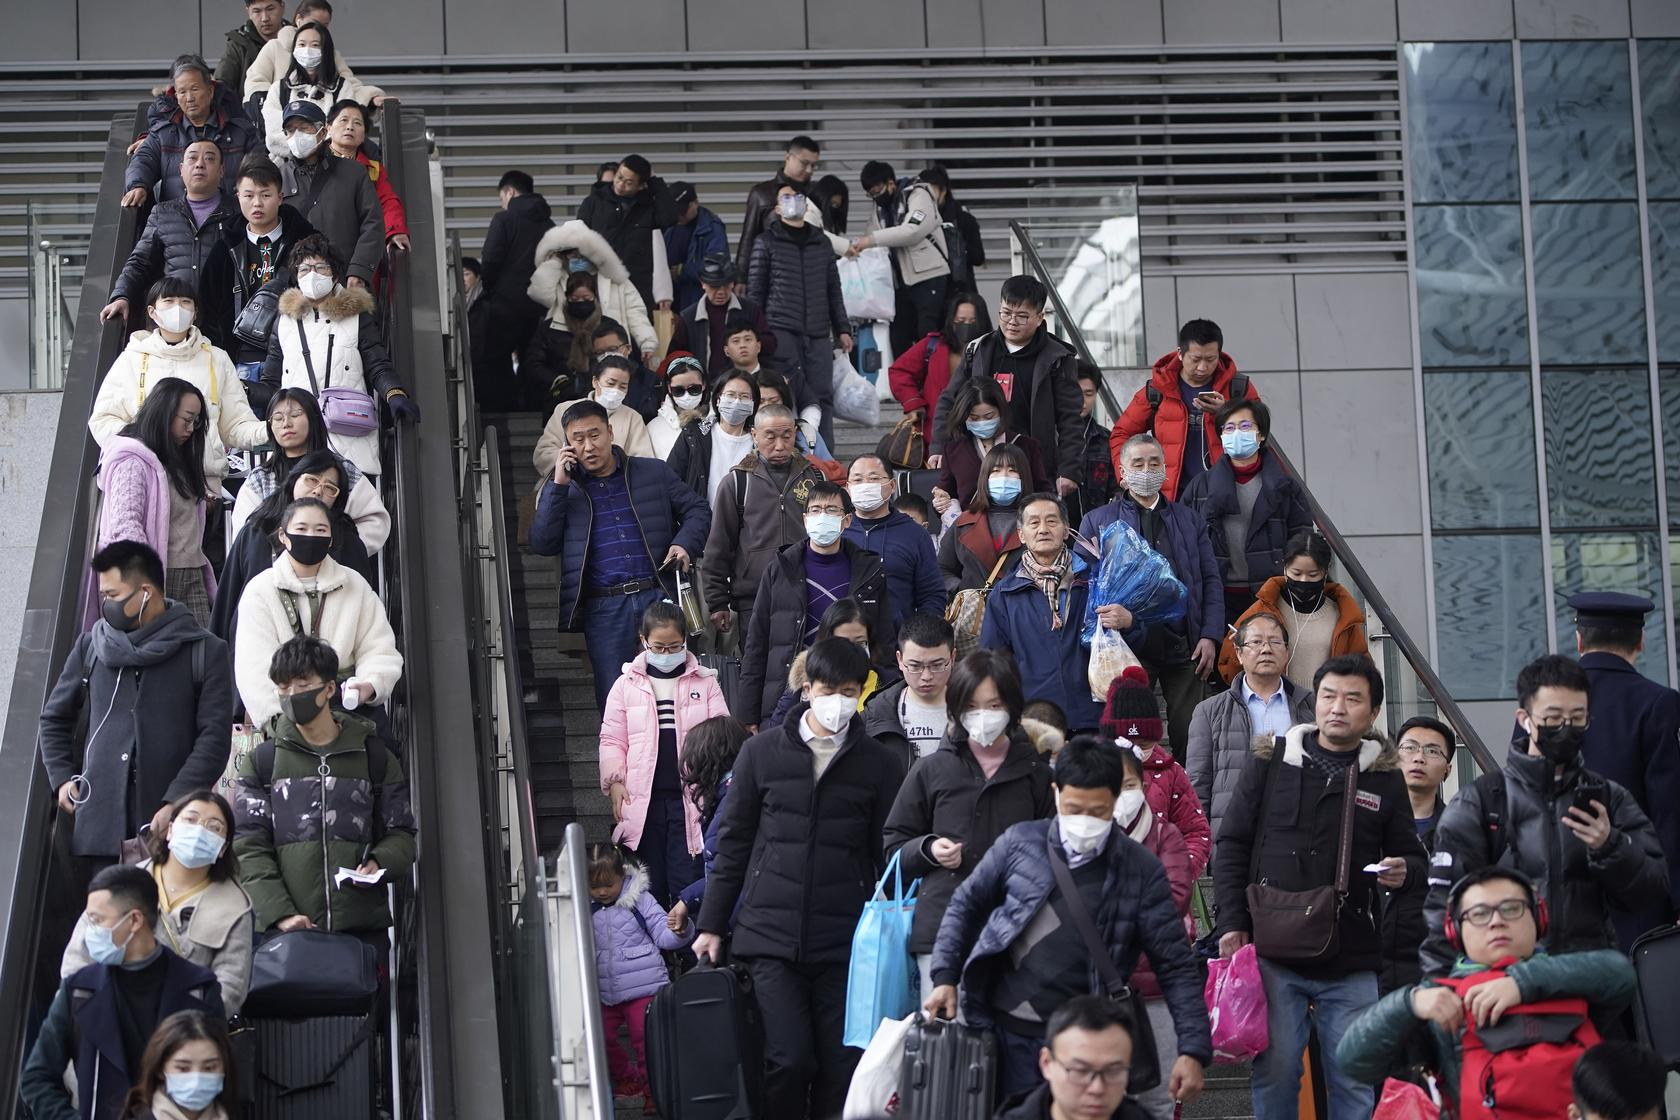 Passengers wearing masks are seen at Shanghai railway station in Shanghai, China January 21, 2020. REUTERS/Aly Song